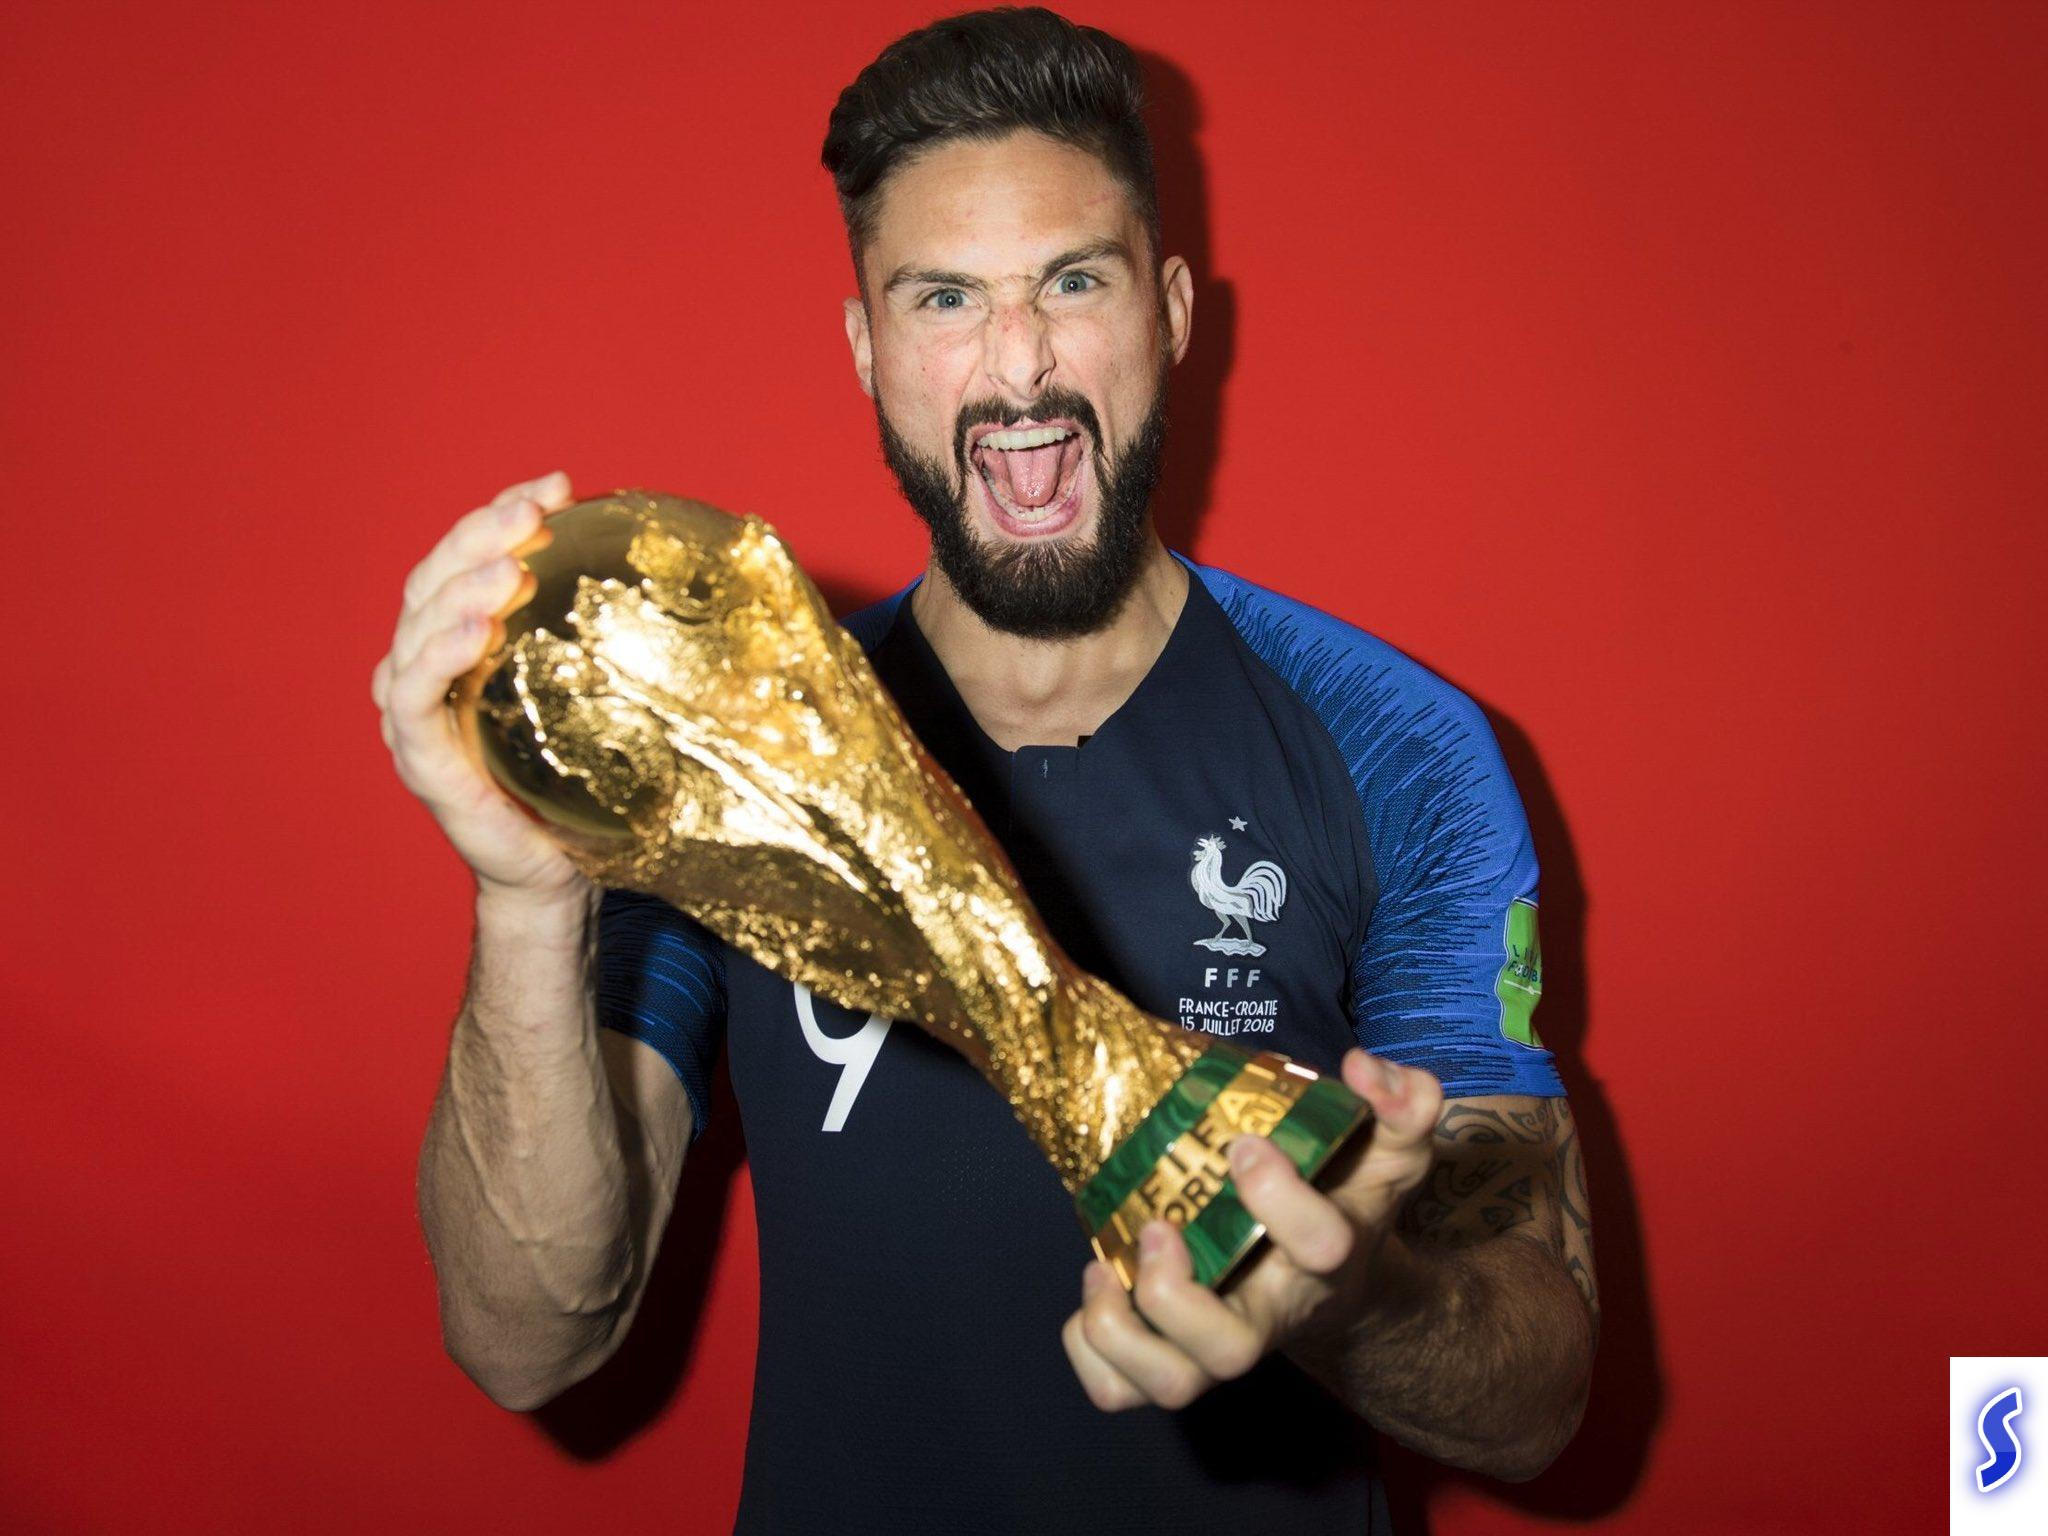 """Am a world champion"" Giroud respond to Benzema comment on him"